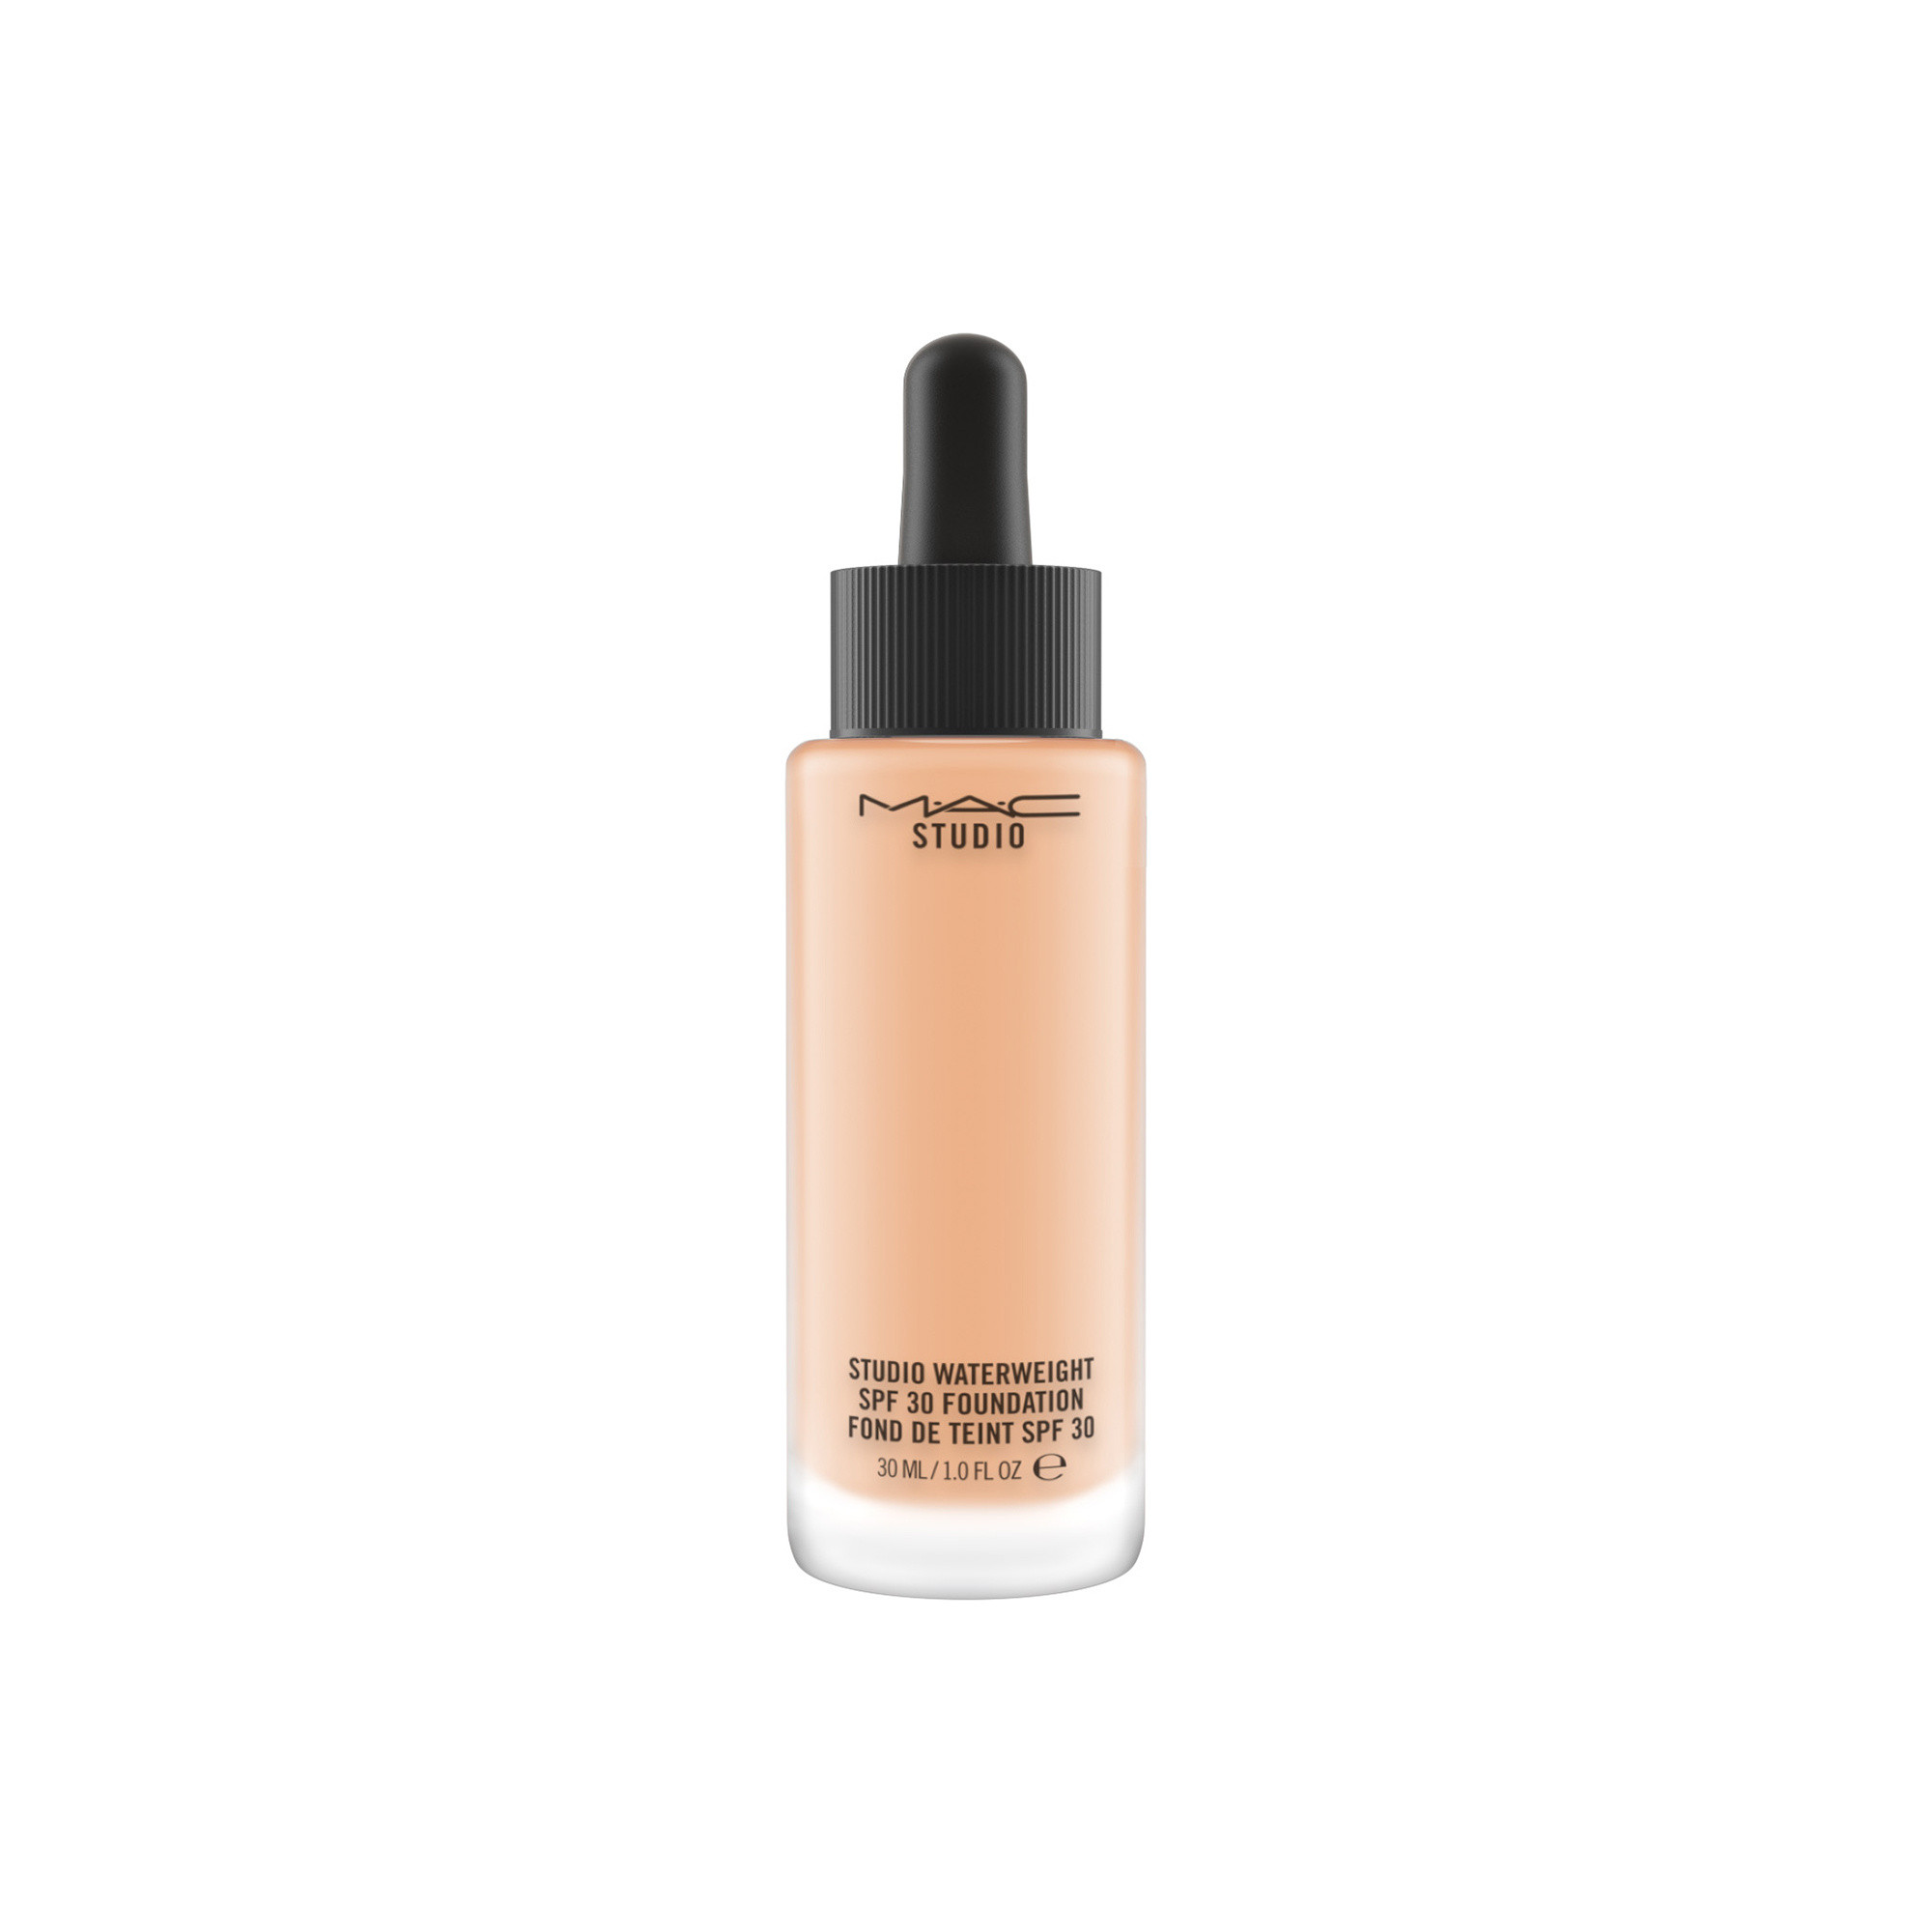 Studio Waterweight Foundation Spf30 - NW22, NW22, large image number 1